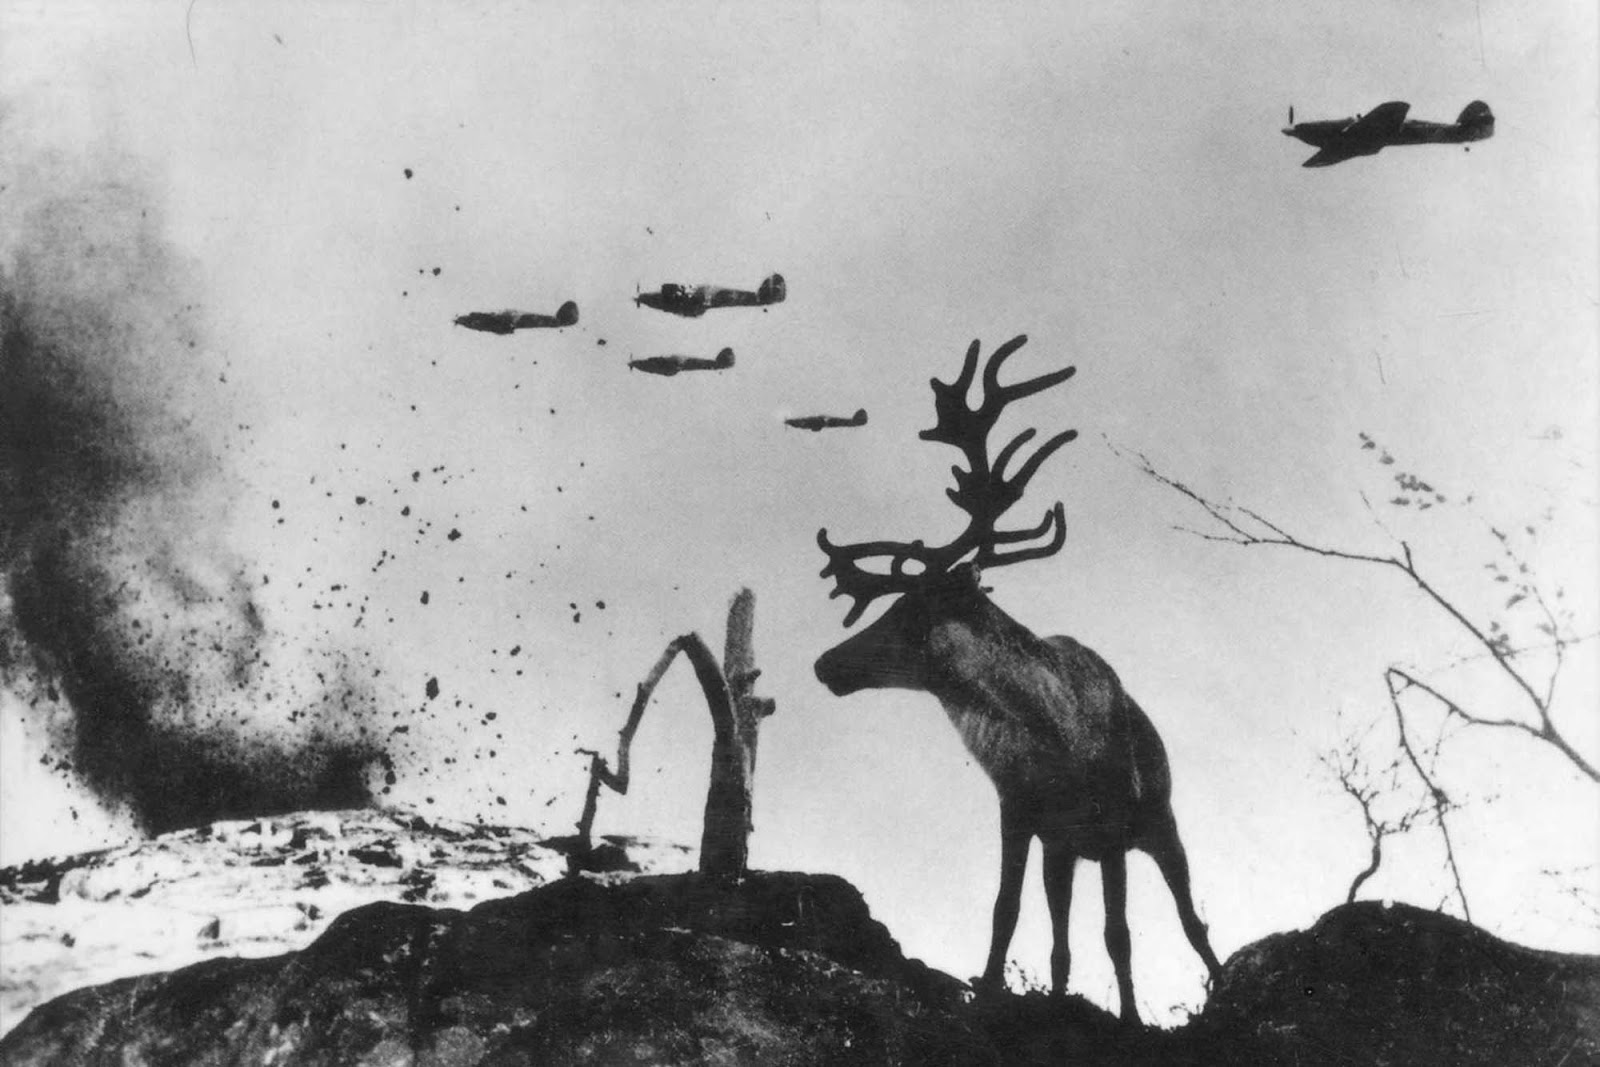 Reindeer Yasha at War. Murmansk area, 1941.